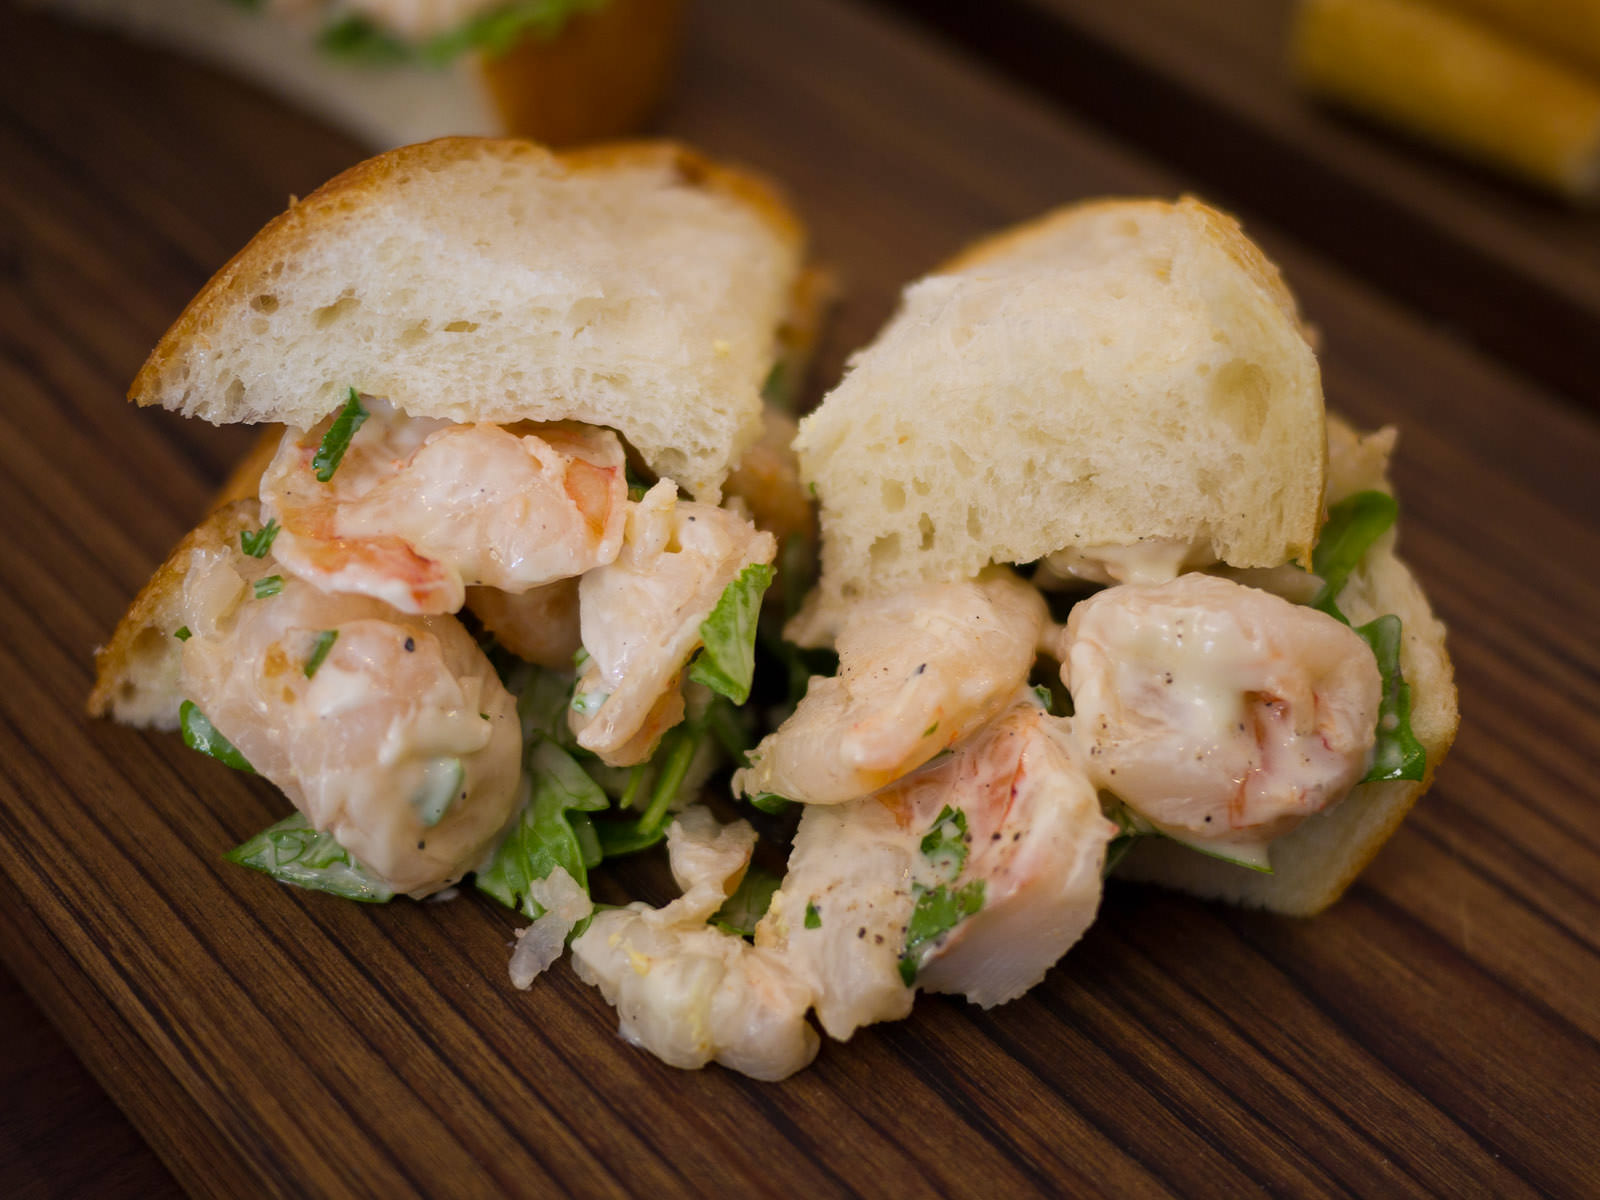 Tiger prawn salad with lime and coriander